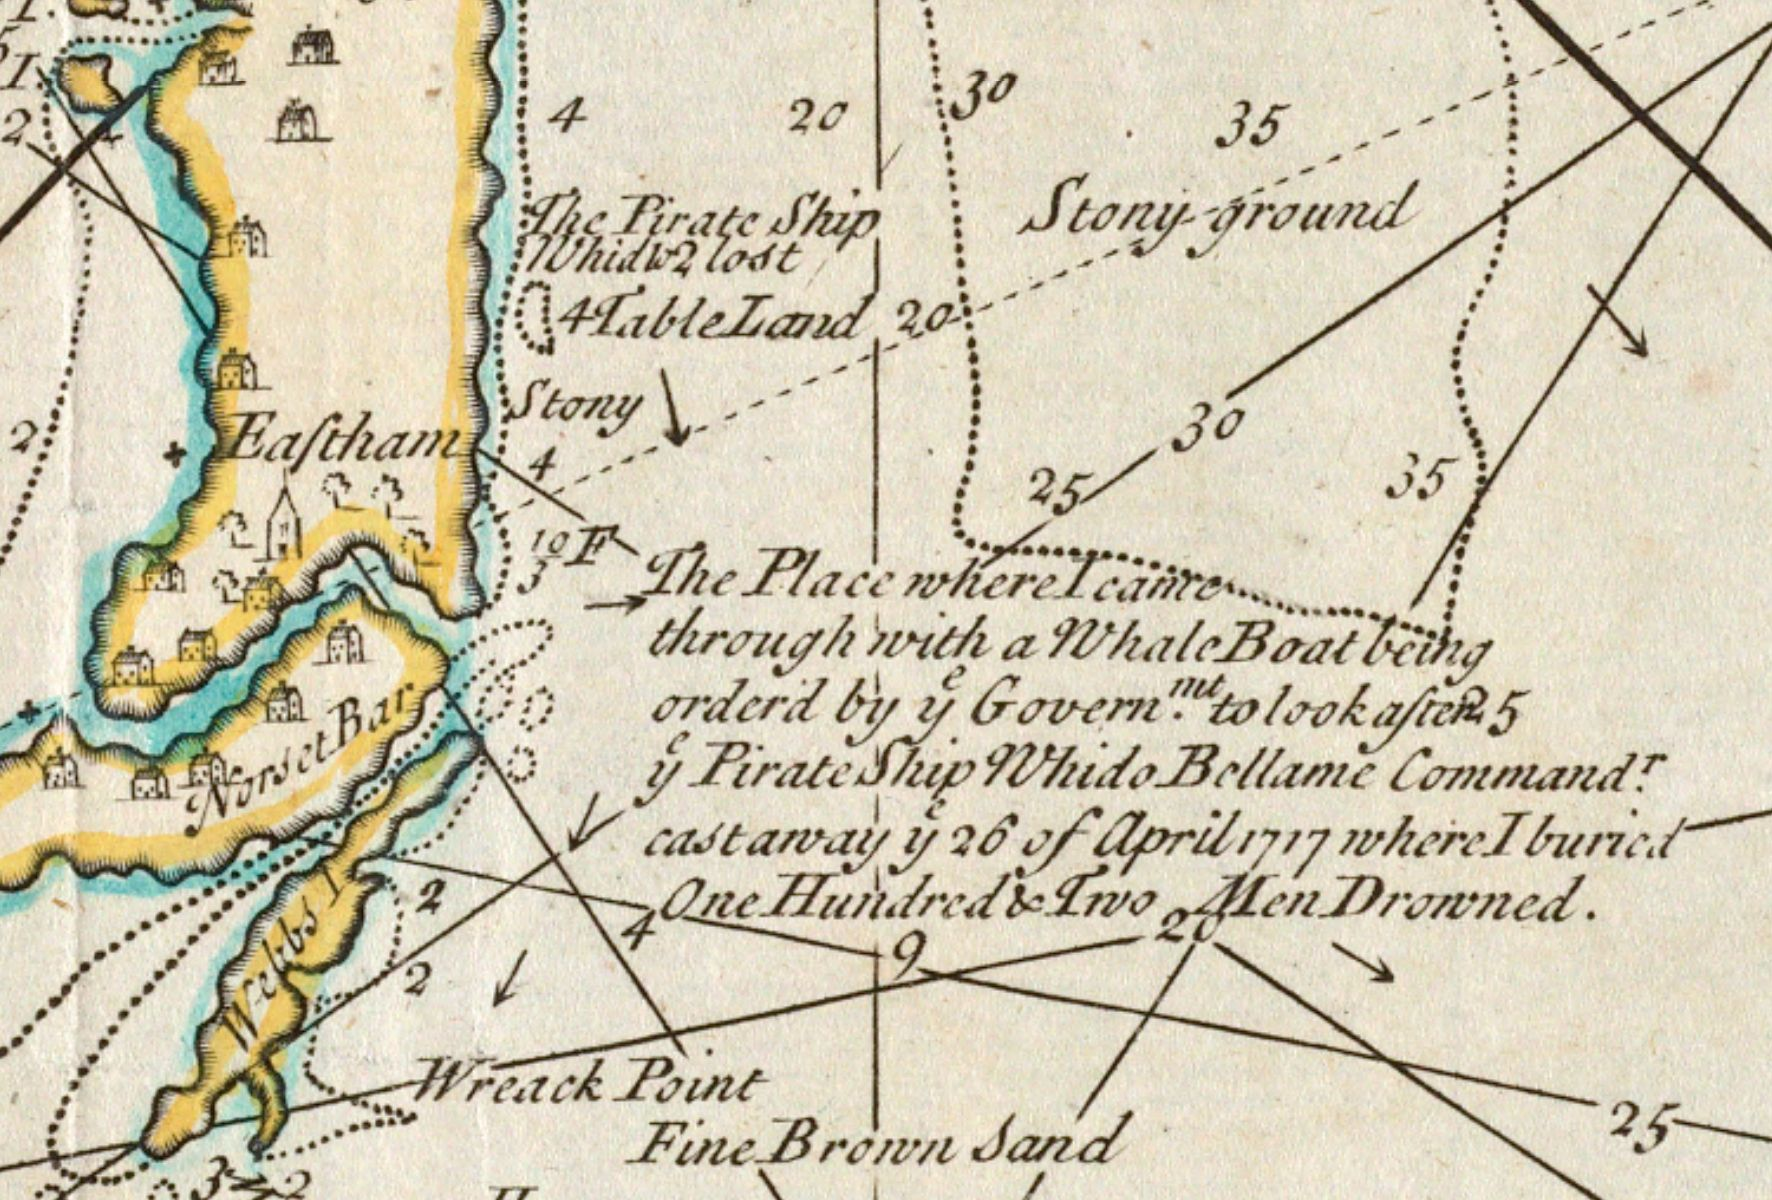 In this this detail Southack denoted where the pirate ship Whydah went down as well as where the whale boat he hired traveled from Provincetown to Eastham through a natural canal called Jeremiah's Gutter. The canal no longer exists due to shifting sands and erosion.